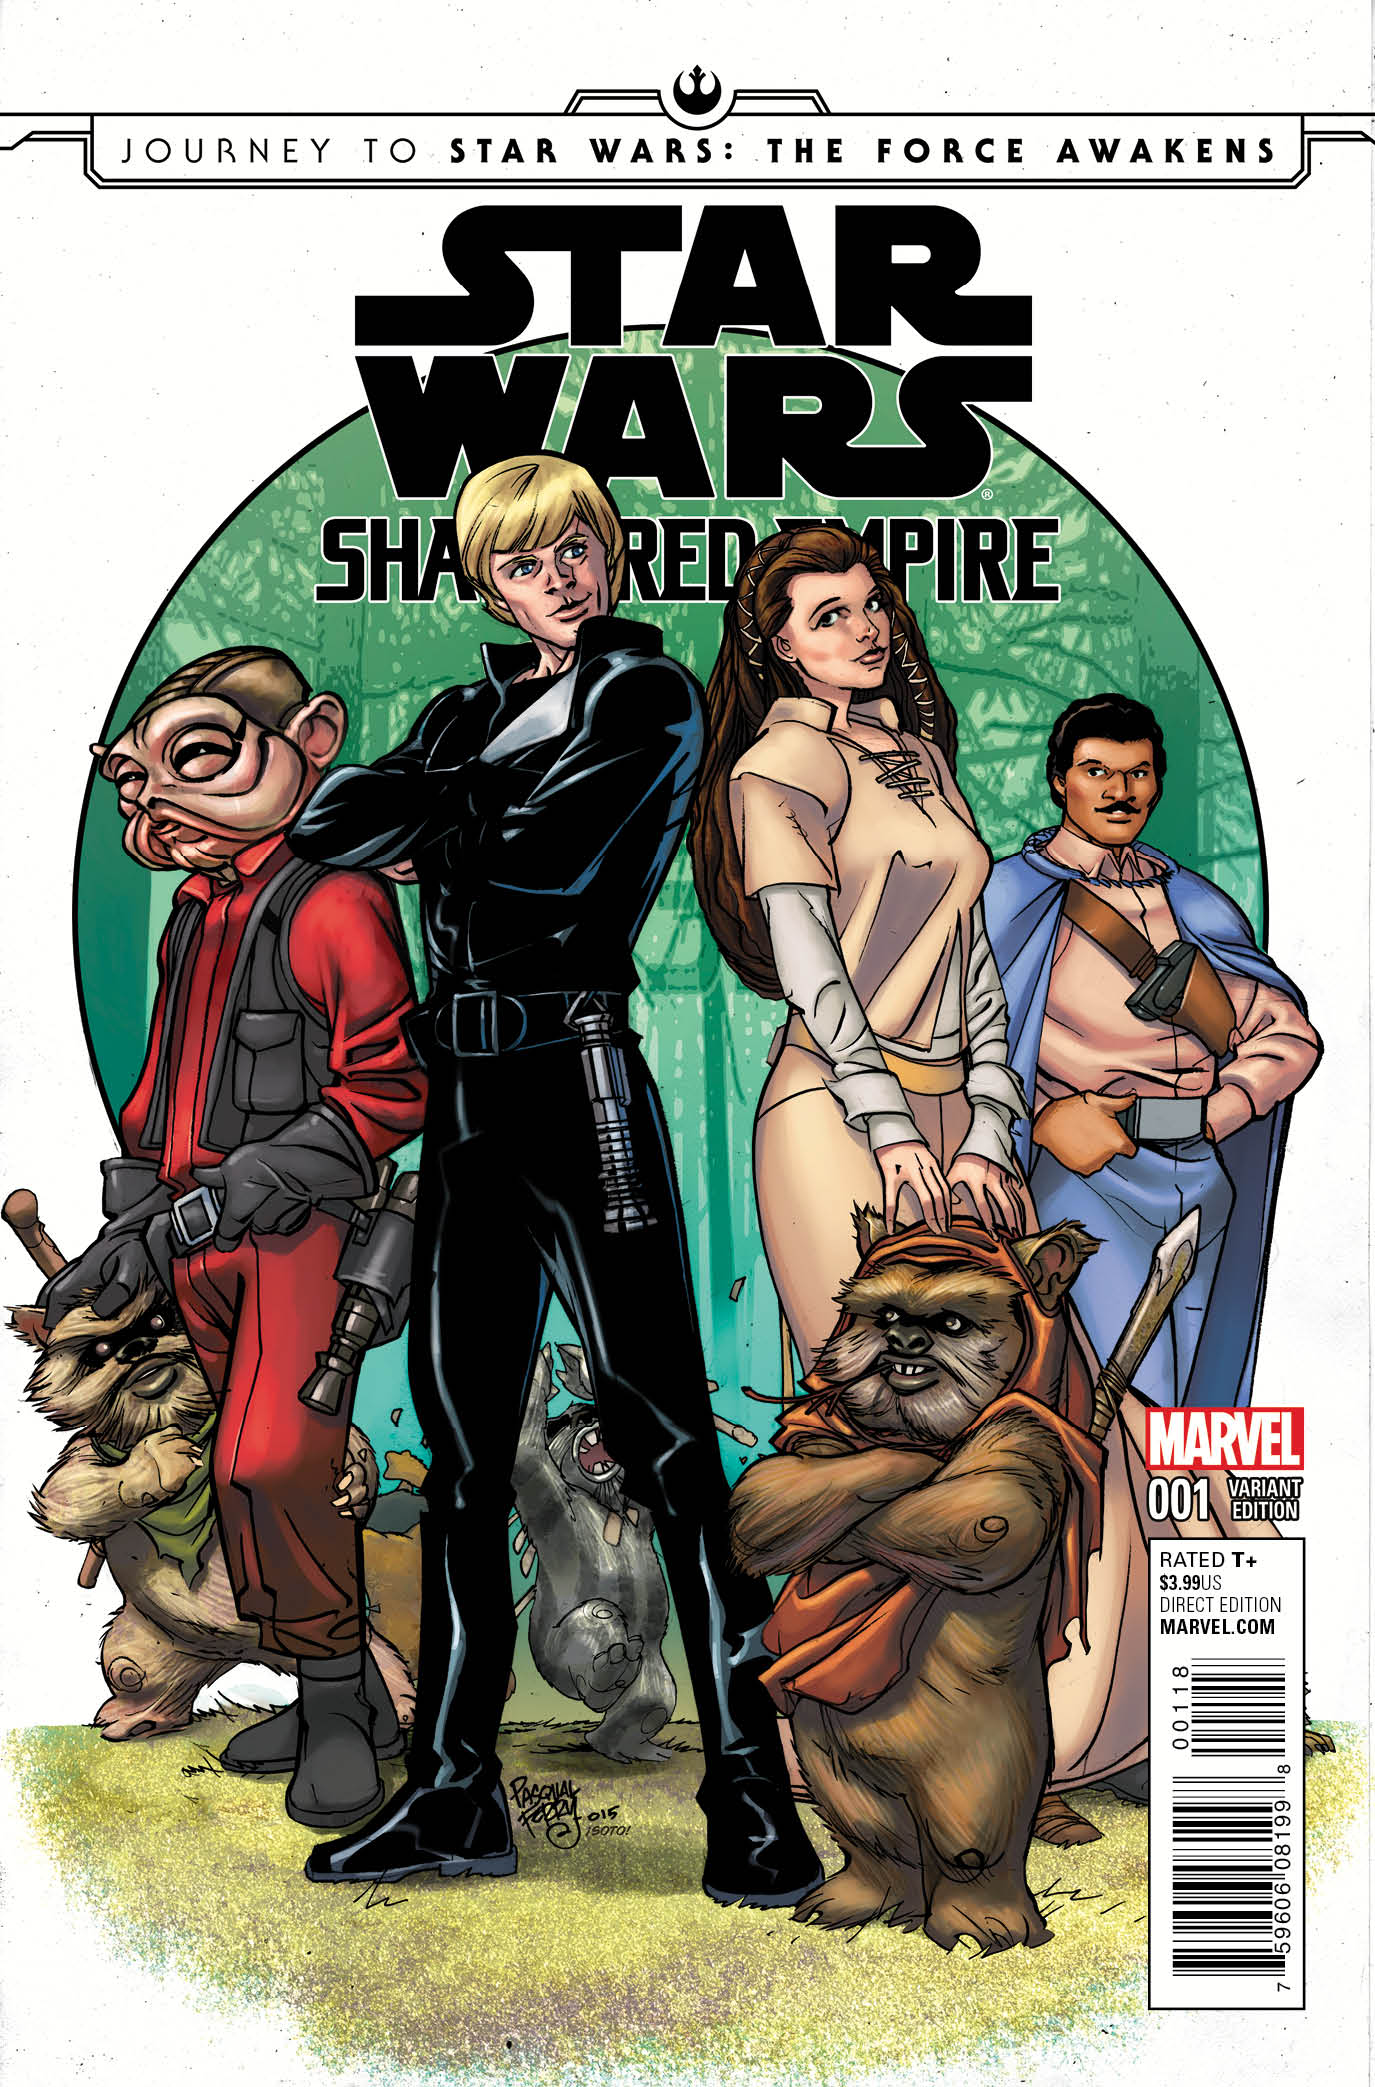 Shattered Empire #1 (Pasqual Ferry Variant Cover) (09.09.2015)